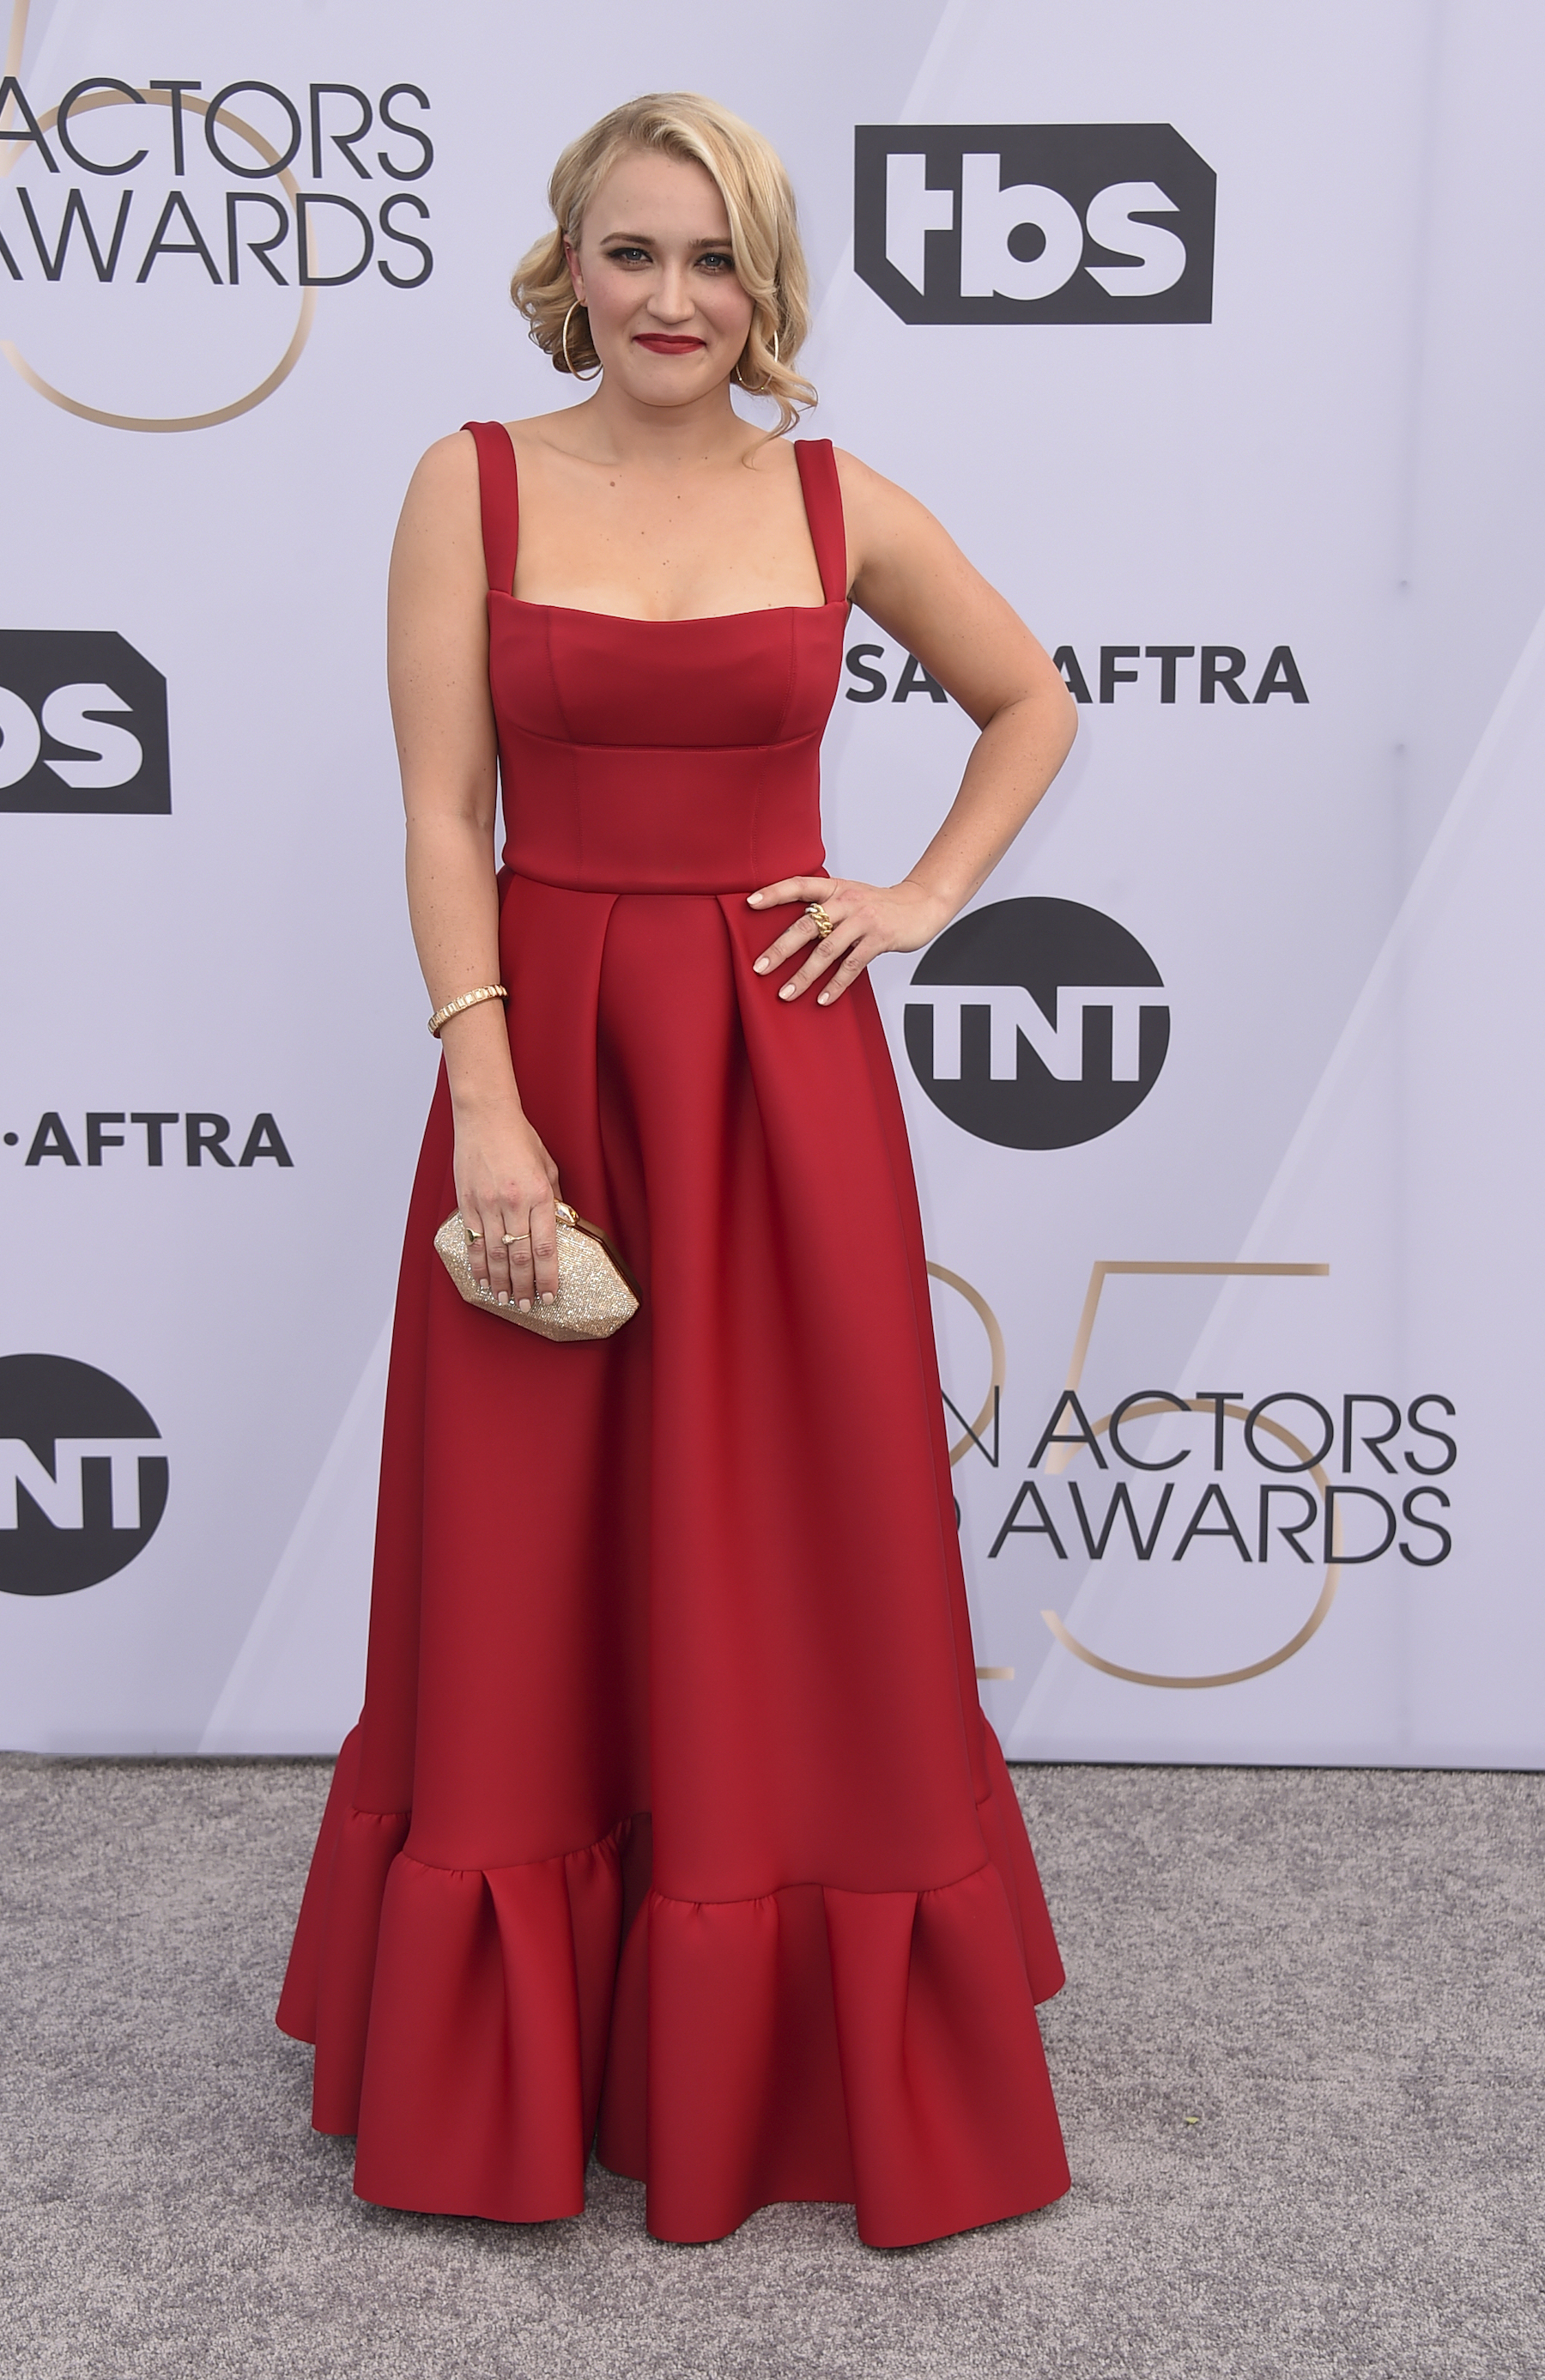 <div class='meta'><div class='origin-logo' data-origin='AP'></div><span class='caption-text' data-credit='Jordan Strauss/Invision/AP'>Emily Osment arrives at the 25th annual Screen Actors Guild Awards at the Shrine Auditorium & Expo Hall on Sunday, Jan. 27, 2019, in Los Angeles.</span></div>